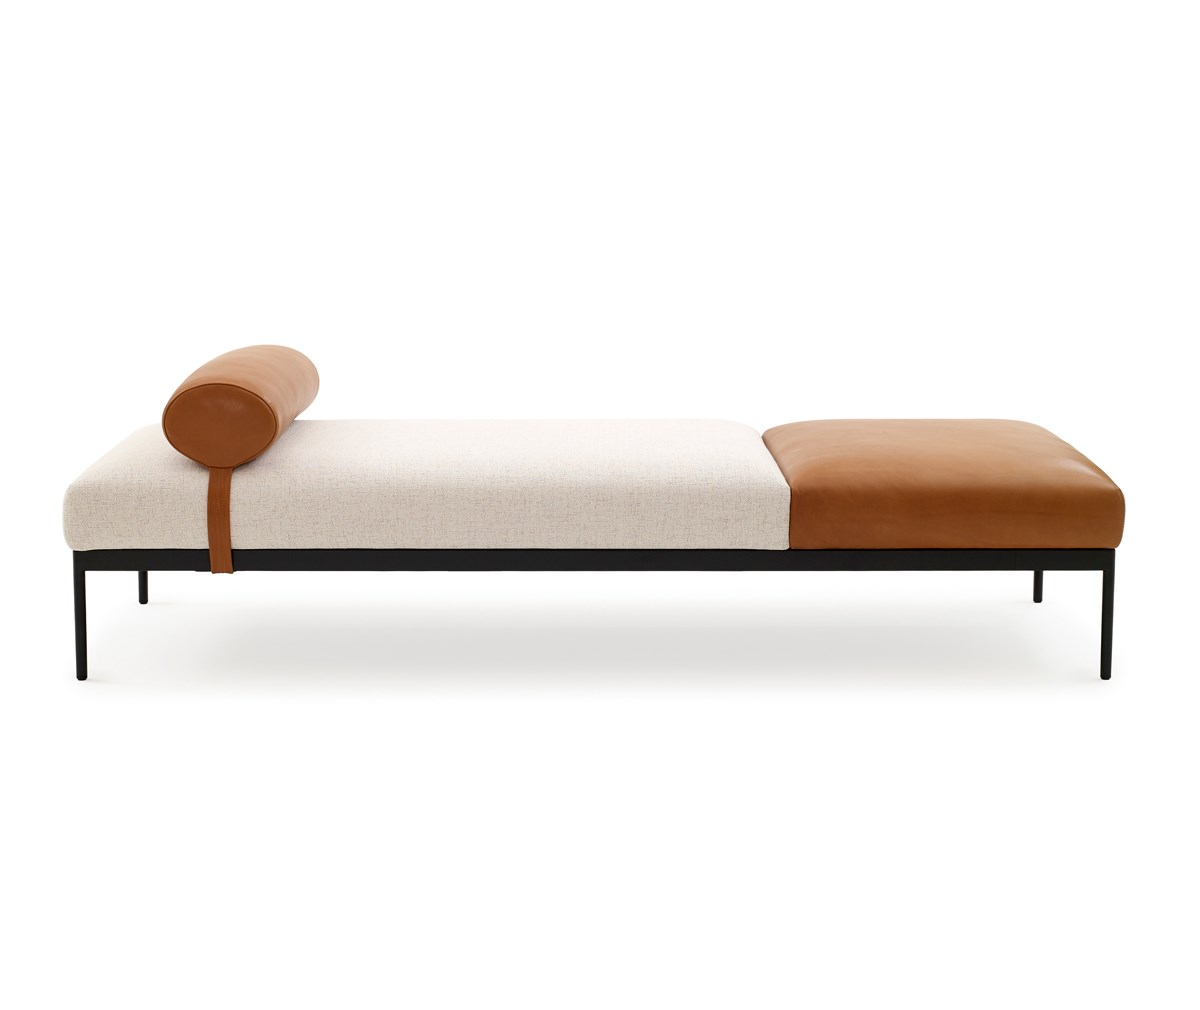 Bon-daybed